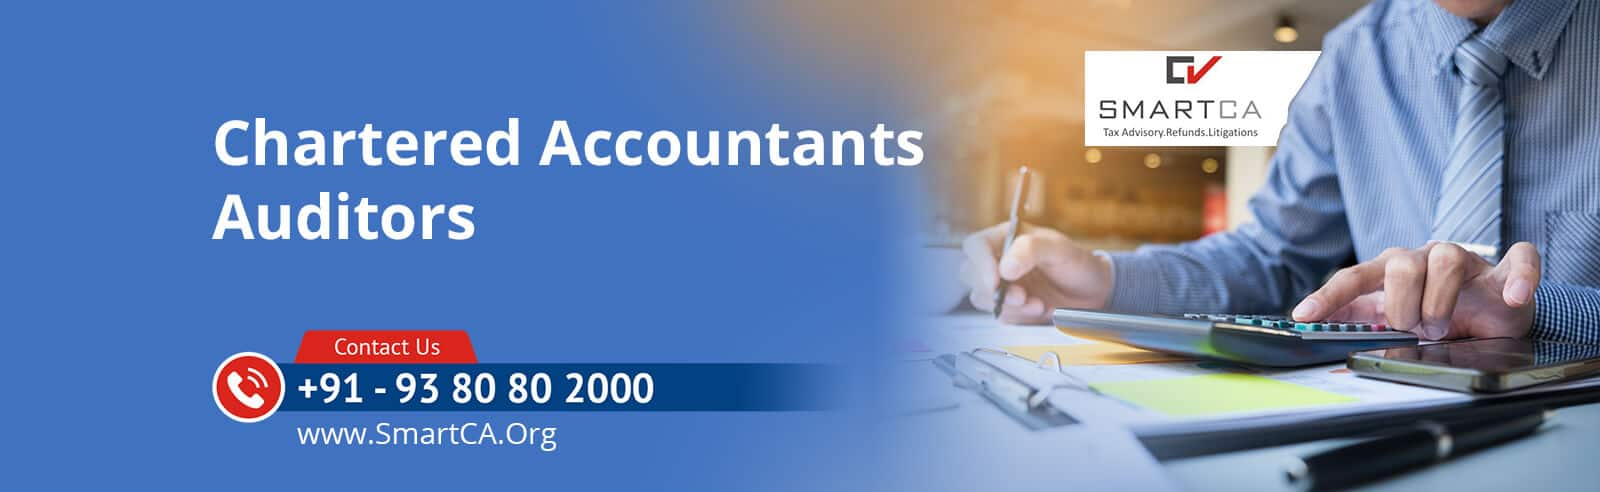 Auditors in Chennai MATHUR